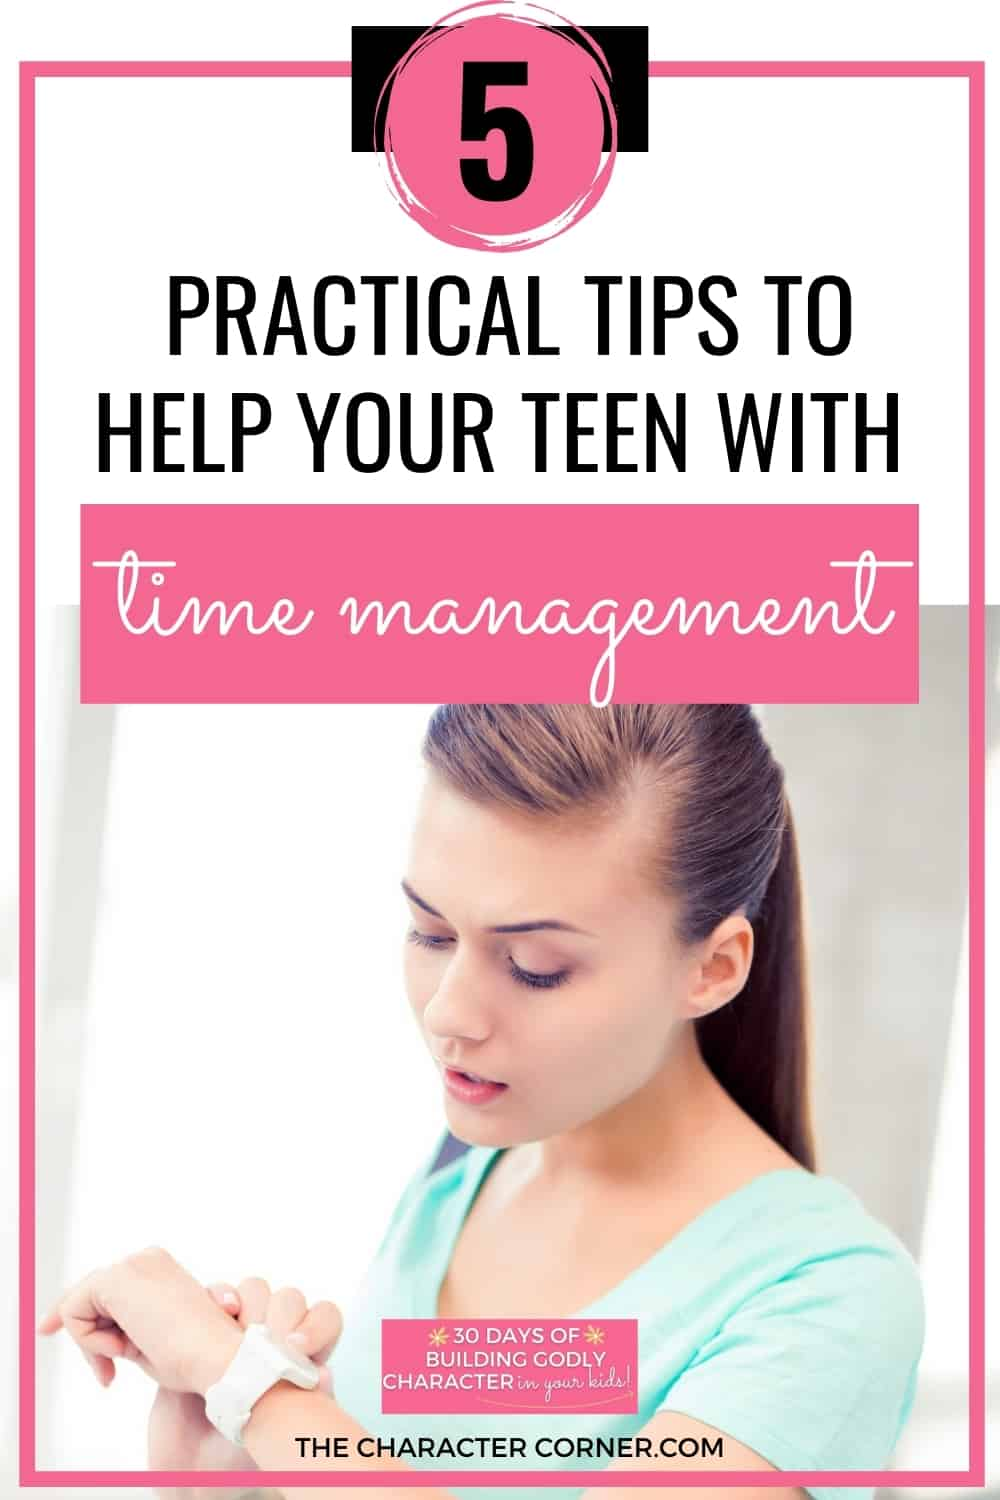 Teen looking at watch text on image reads: 5 Practical Tips To Help Your Teen With Time Management